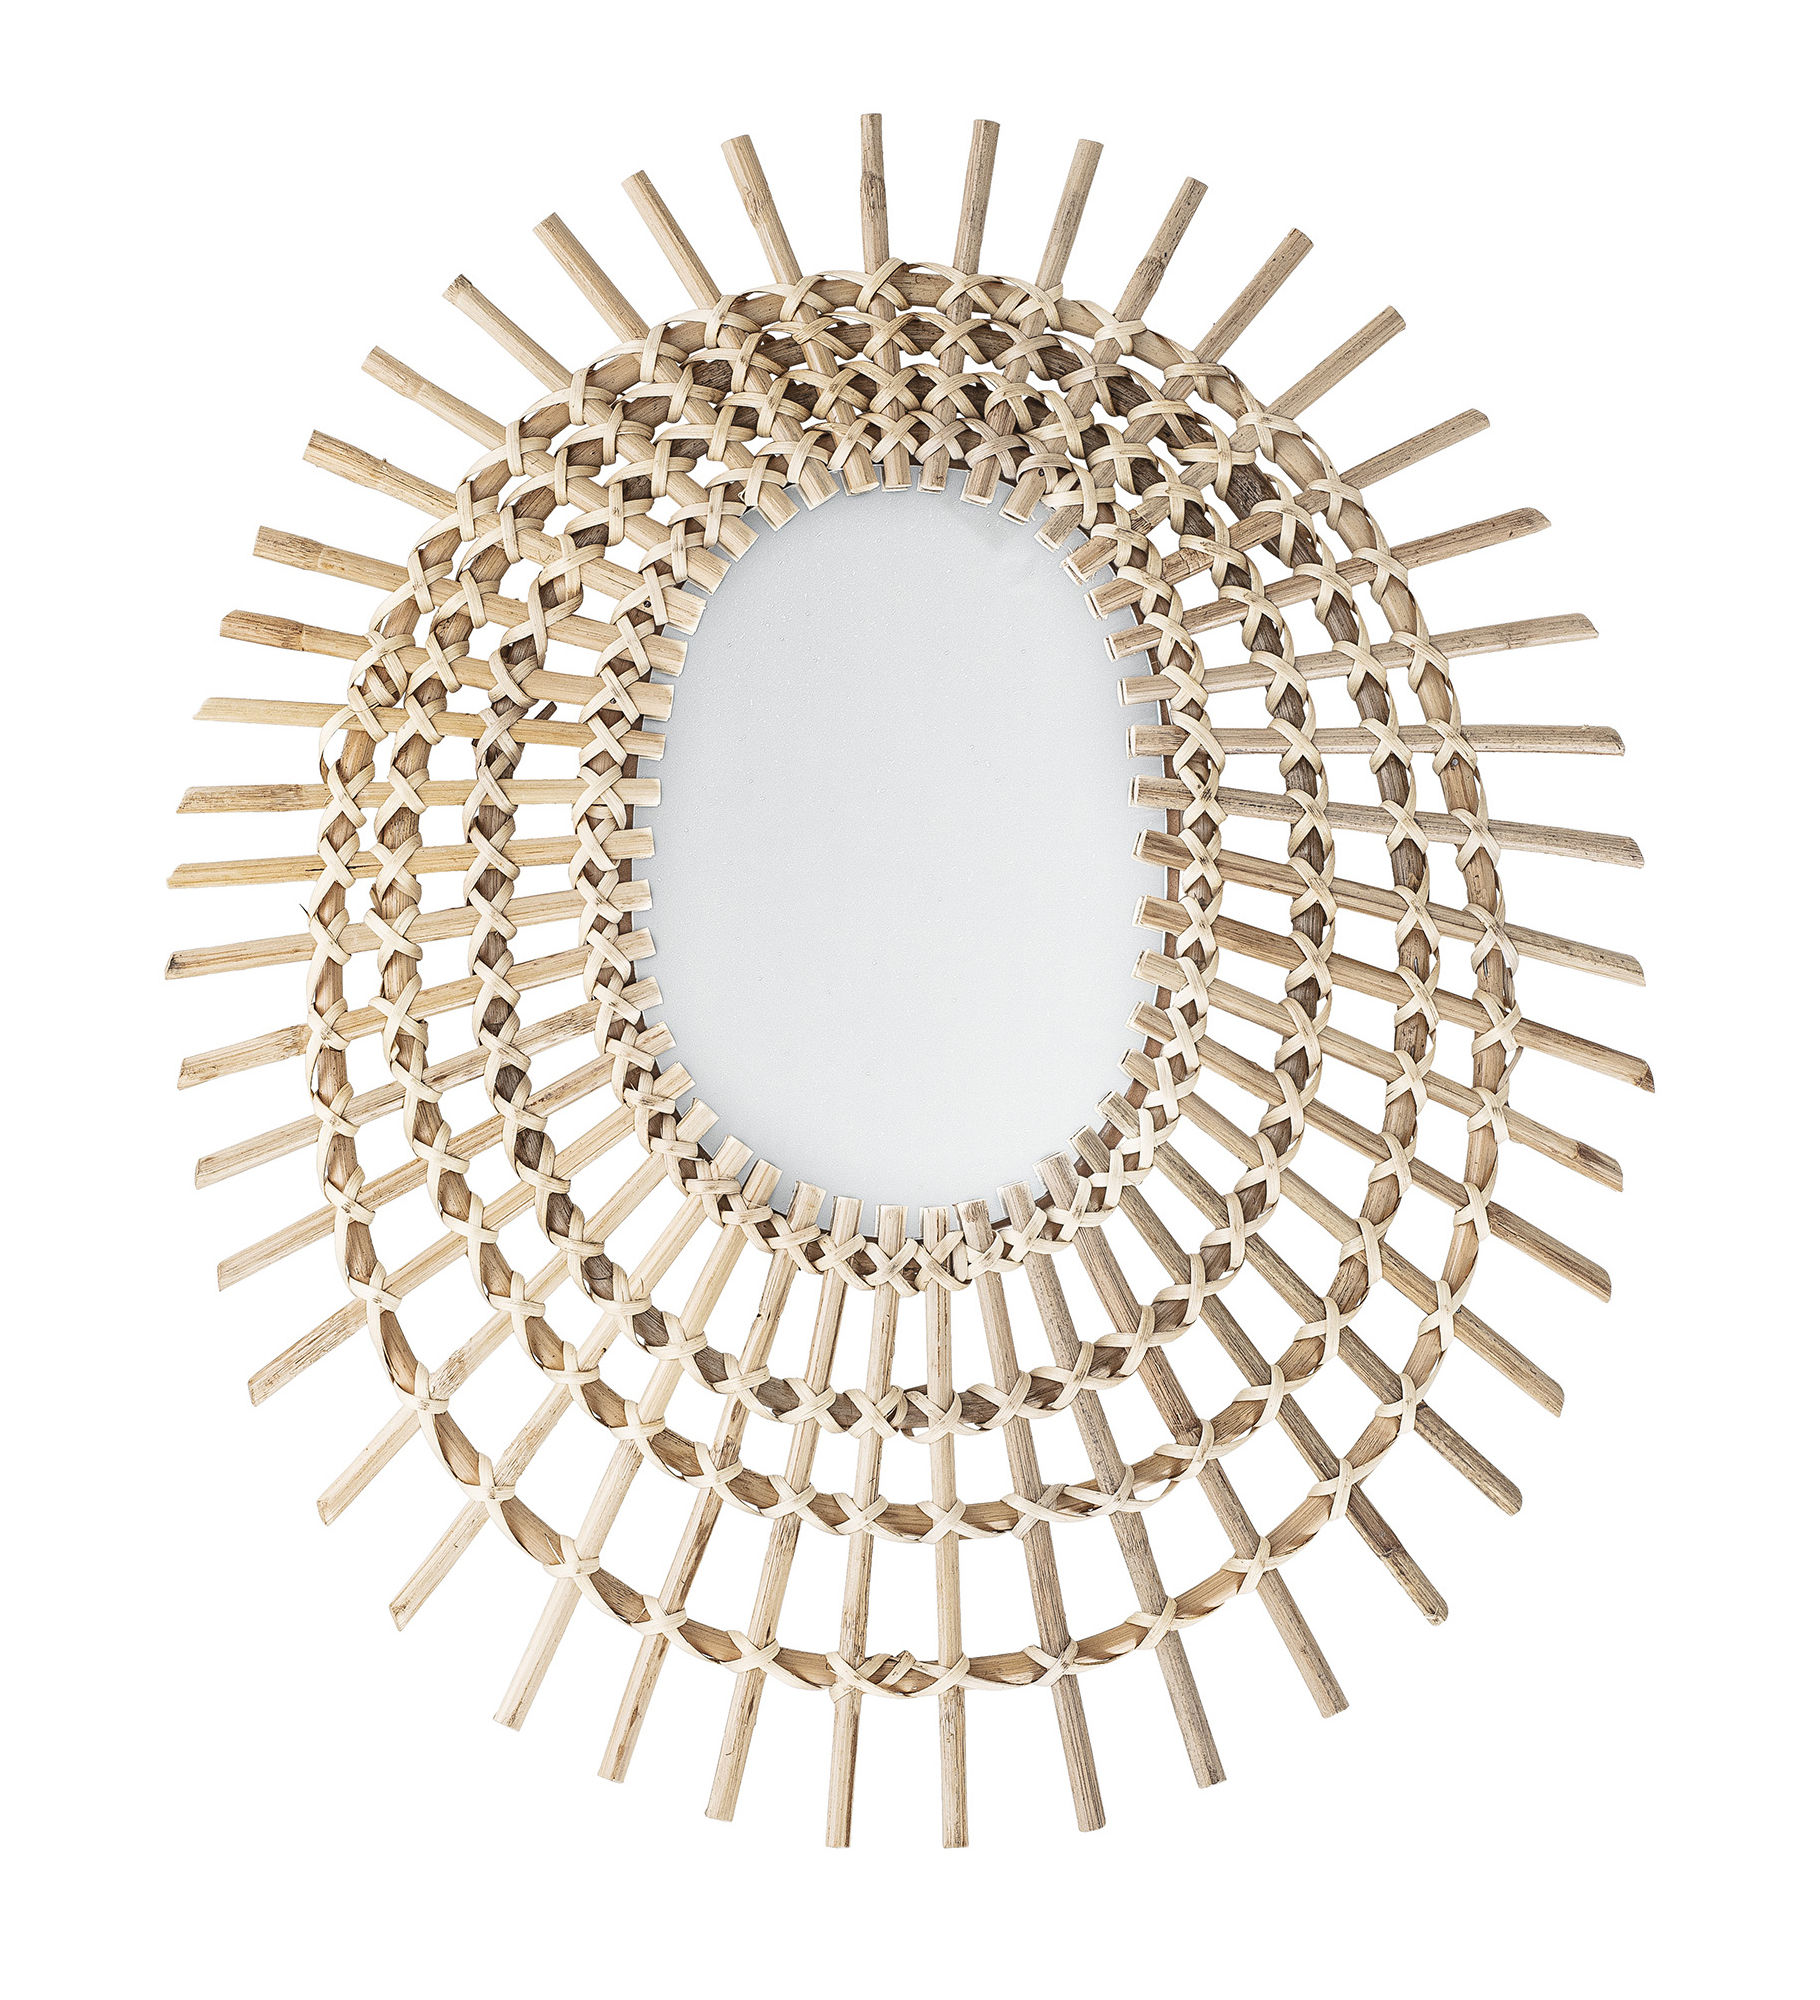 Decoration - Mirrors - Wall mirror - / 54 x 64 cm by Bloomingville - Rattan - Glass, Rattan